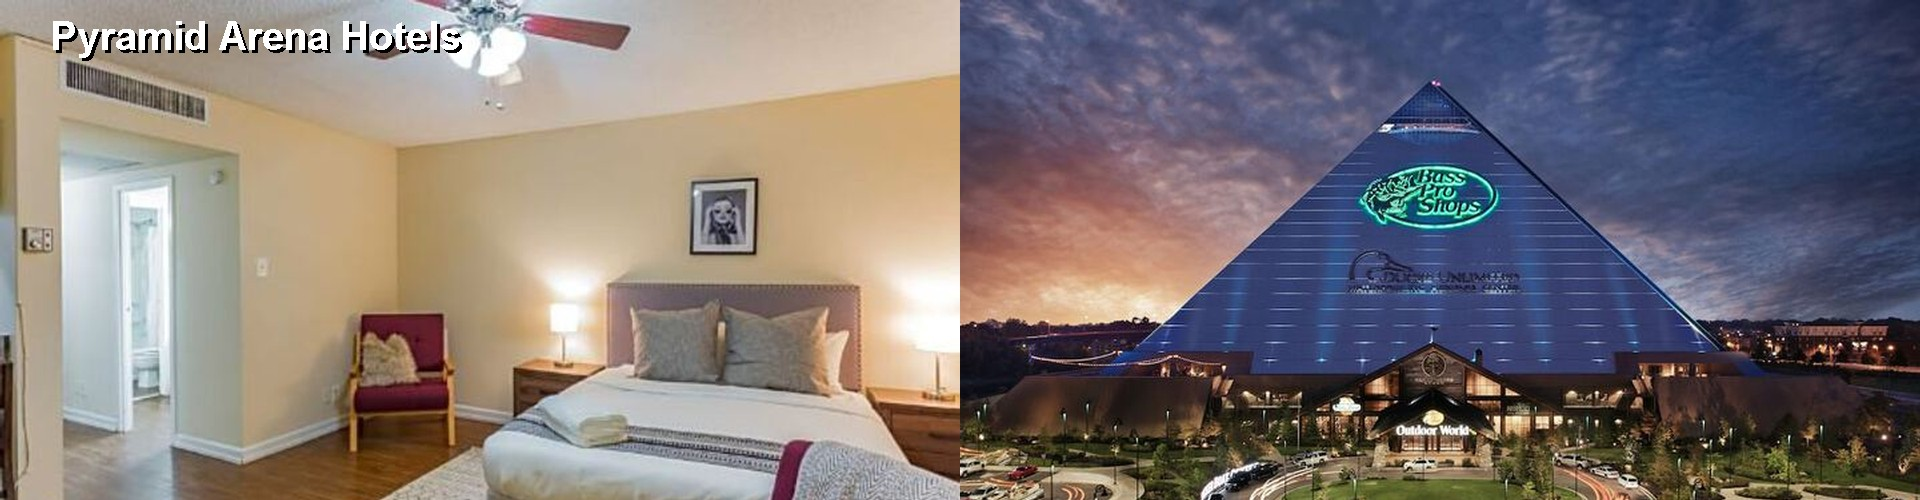 5 Best Hotels near Pyramid Arena